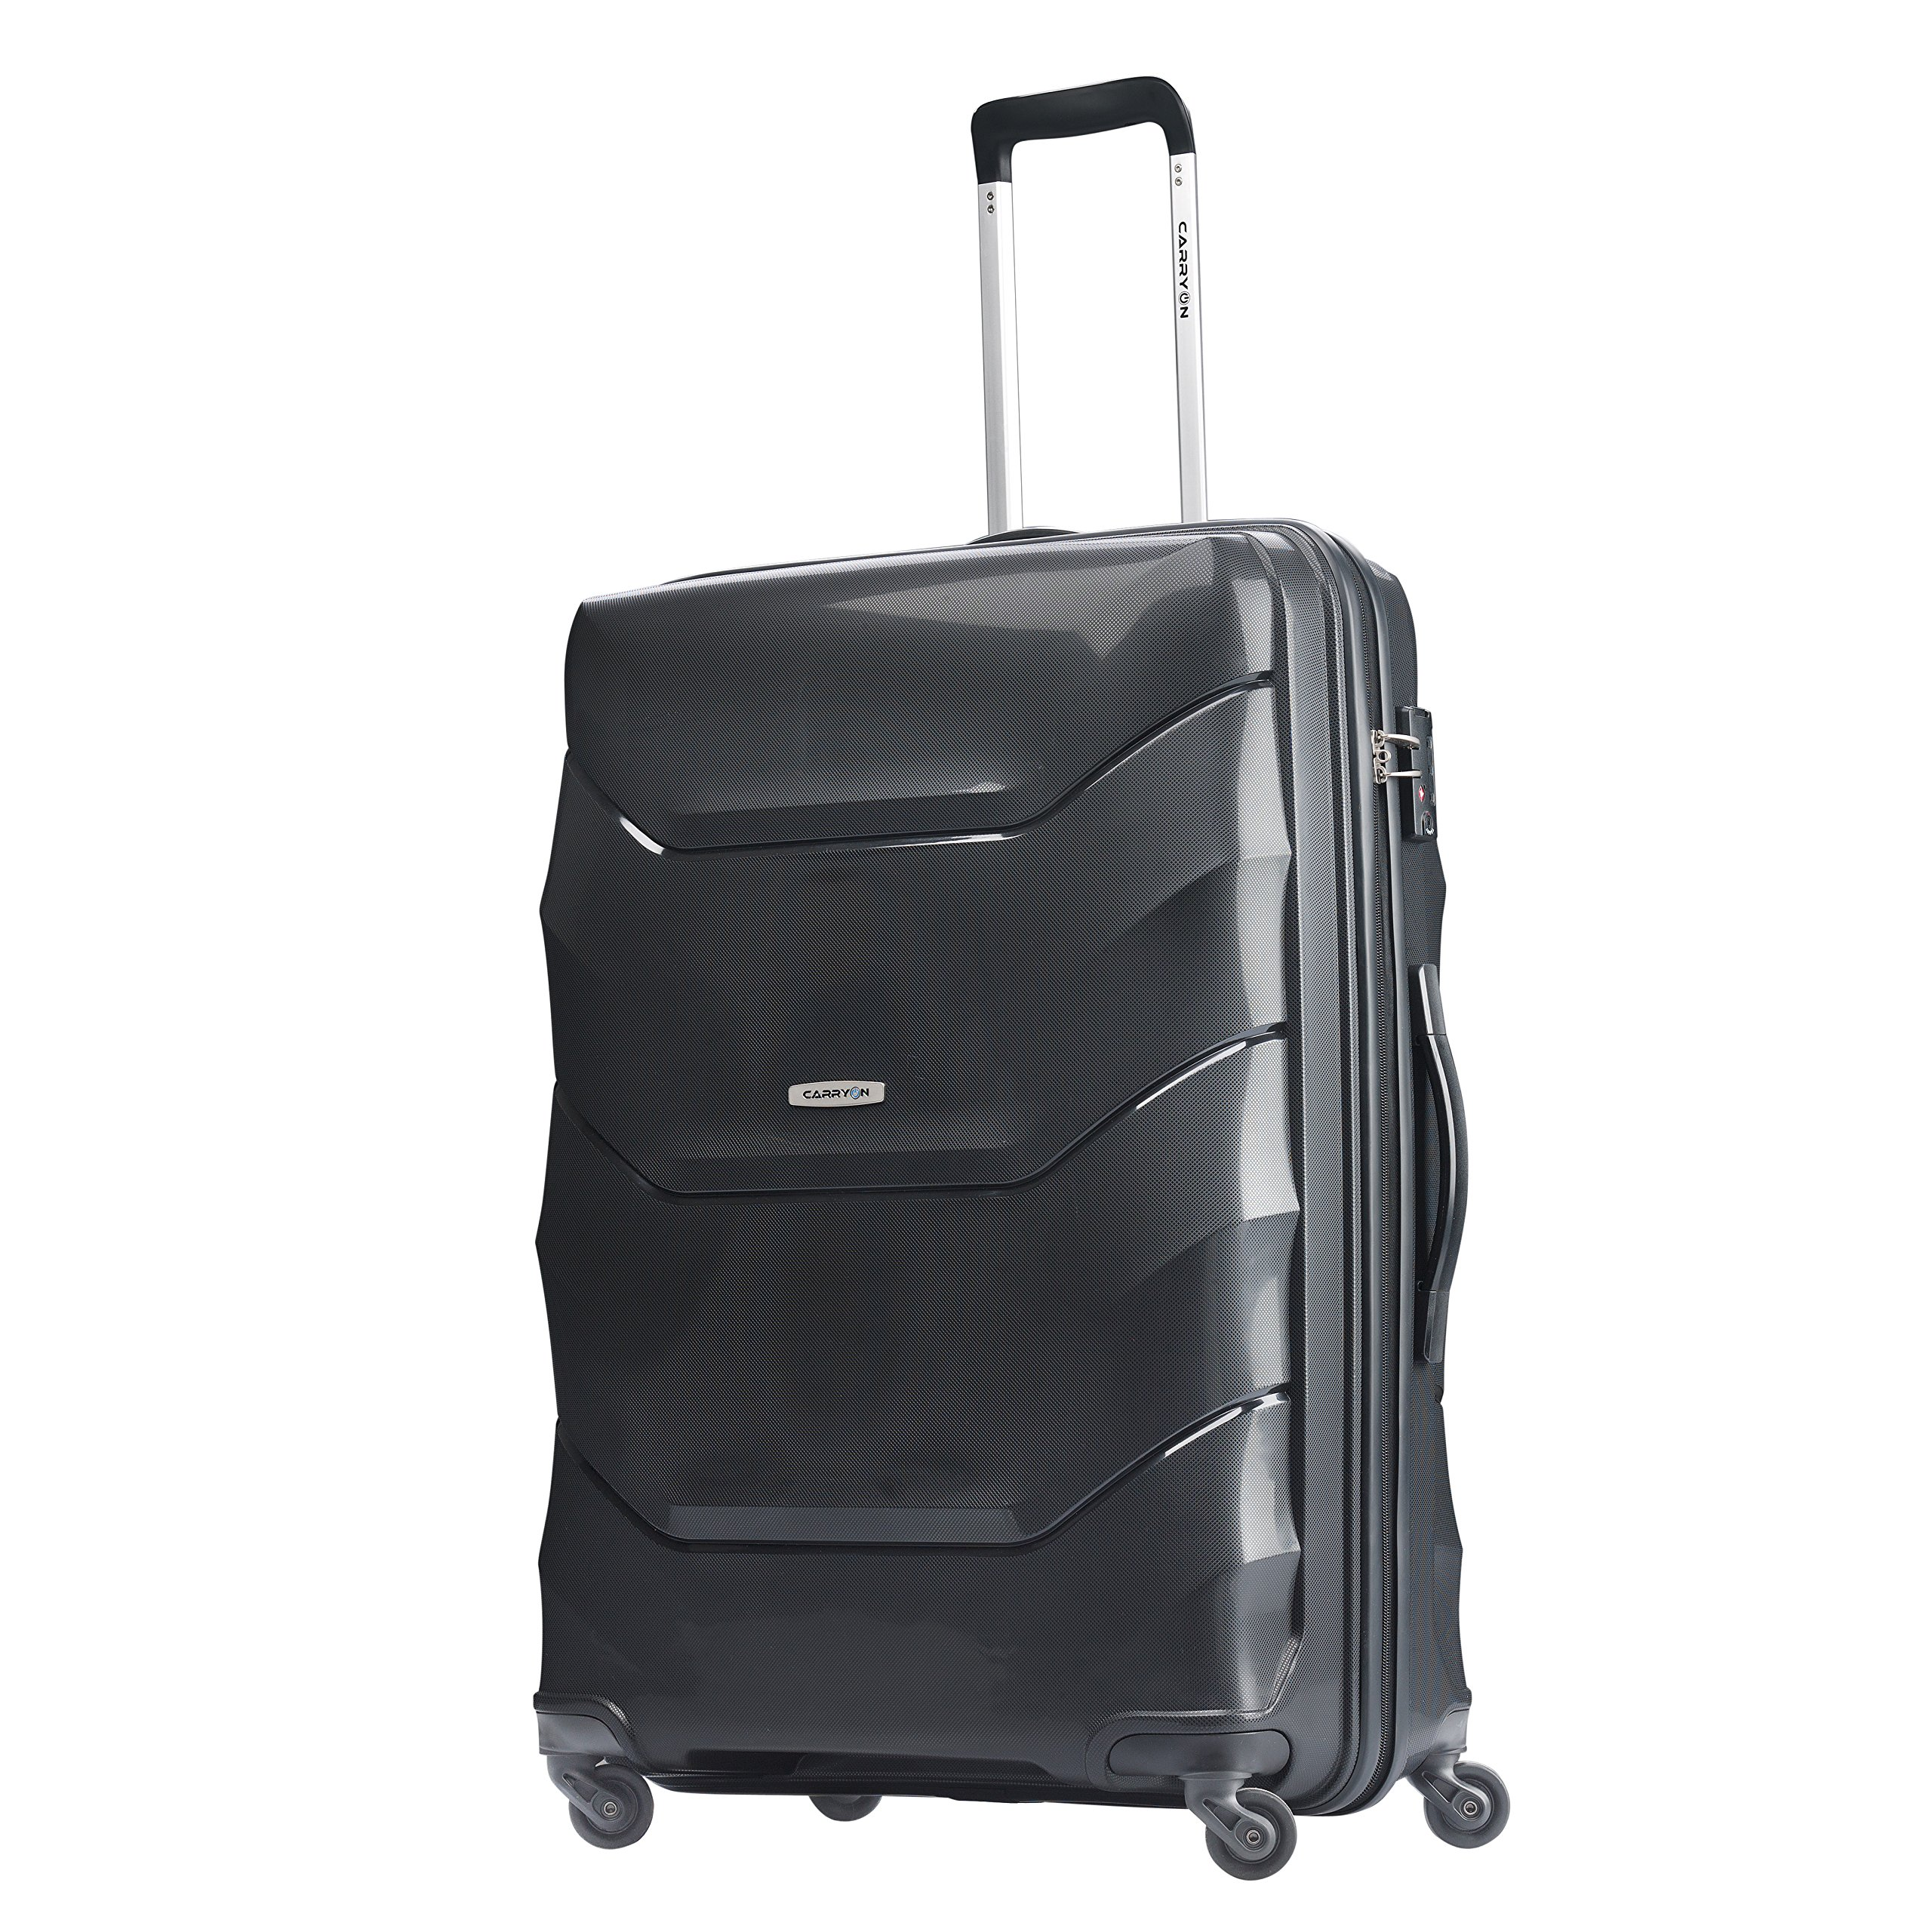 carryon porter 2 0 reisekoffer tsa koffertrolley koffer. Black Bedroom Furniture Sets. Home Design Ideas